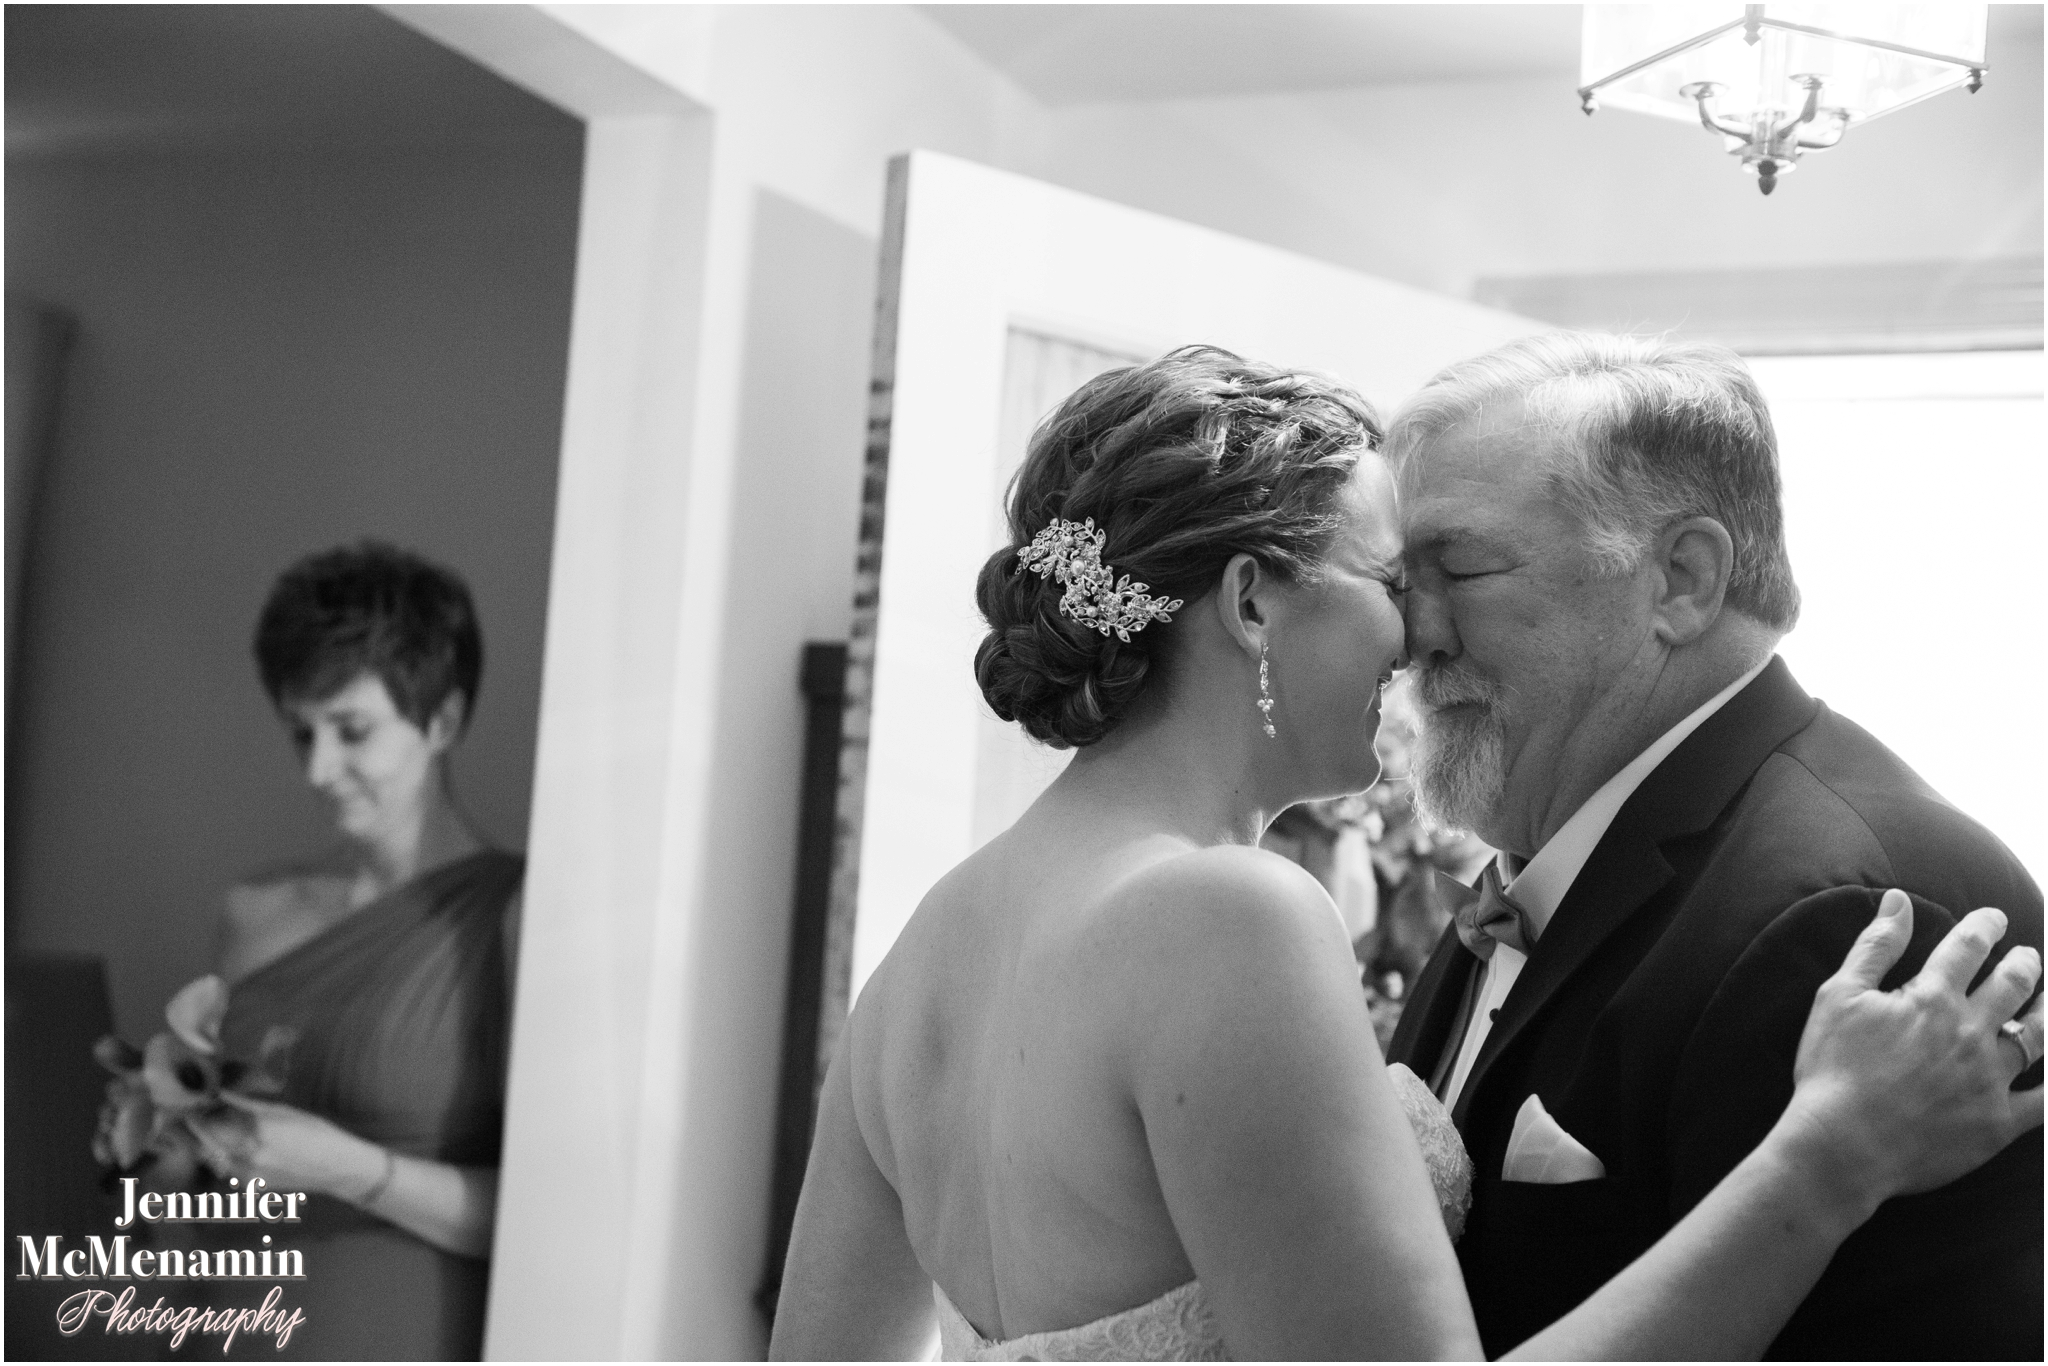 022-HenningMiller_00758bw-0140_JenniferMcMenaminPhotography_Evergreen-Museum-And-Carriage-House_Evergreen-wedding_Baltimore-wedding-photographer_Baltimore-wedding-photography